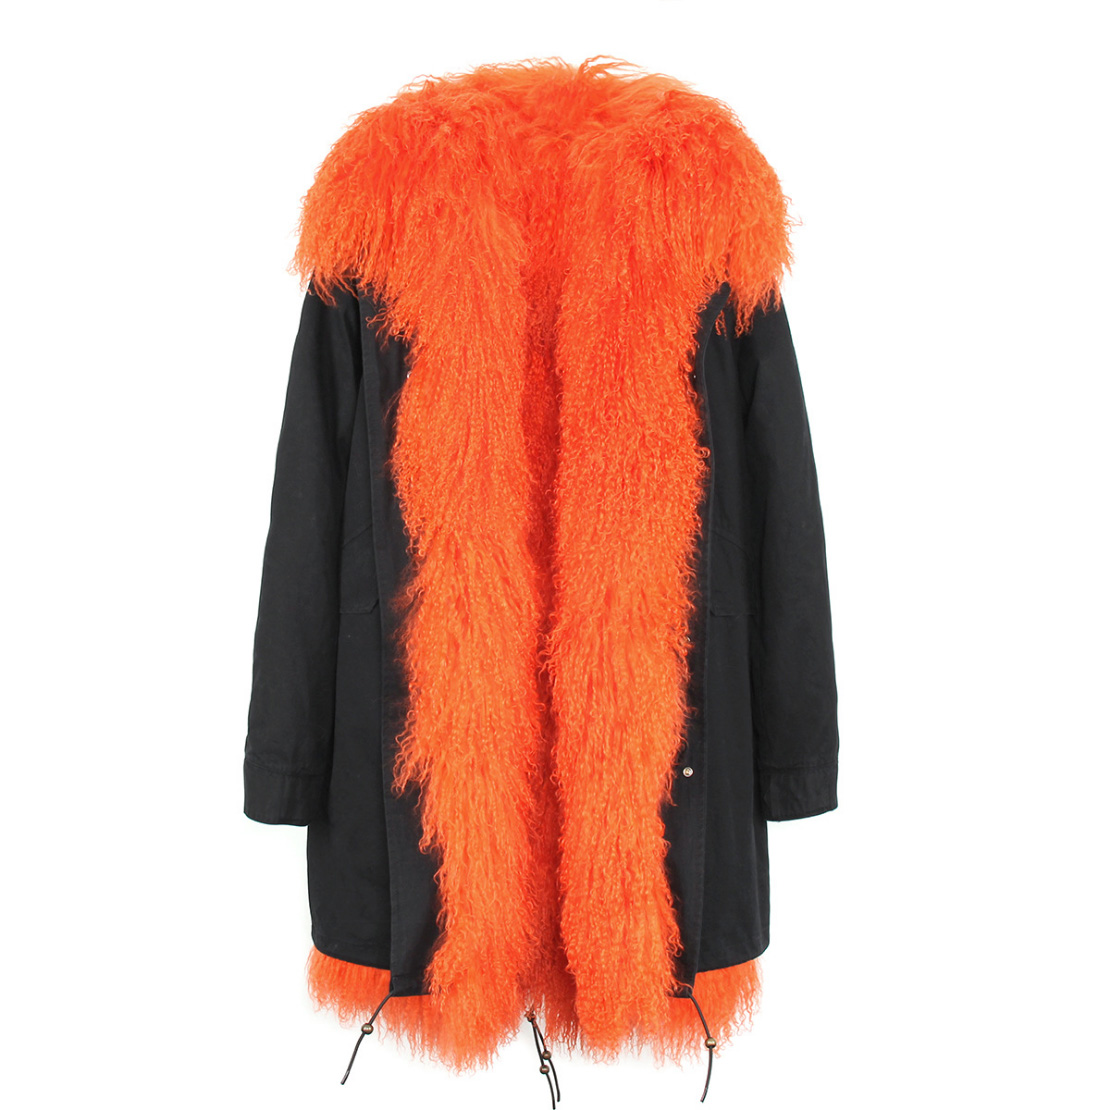 Tibet Sheep Fur Hooded Parka 119 Details 5